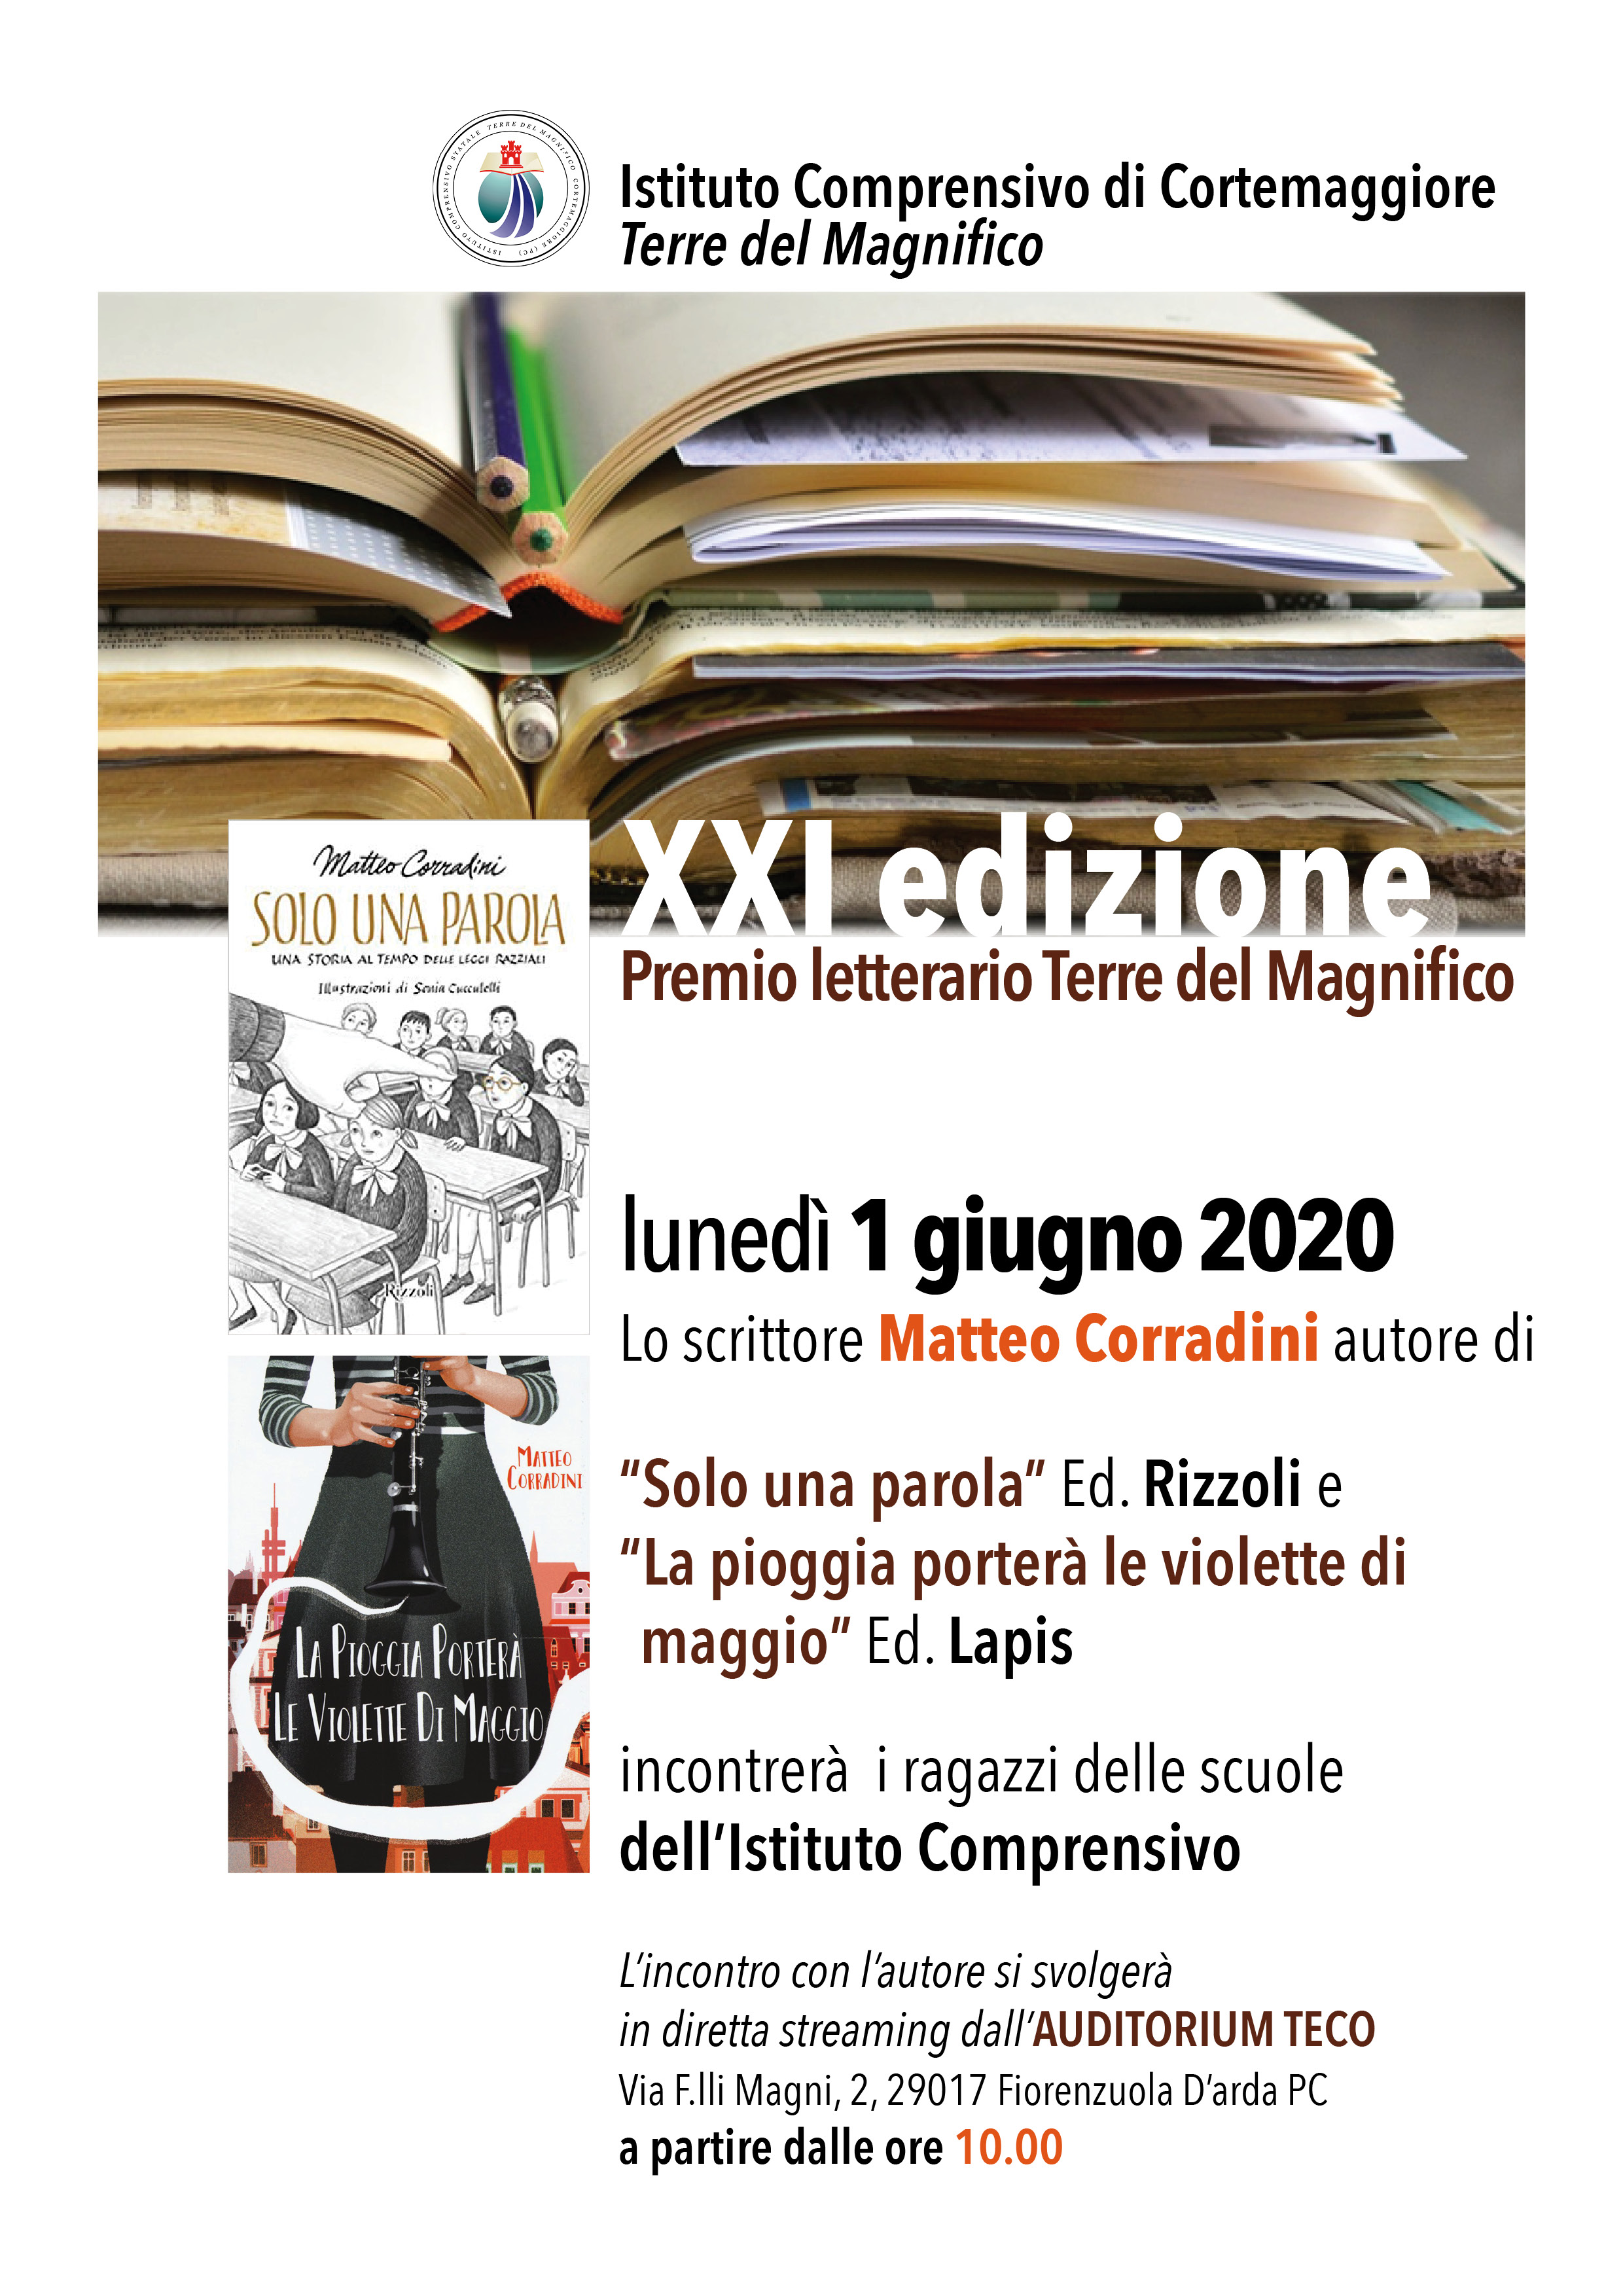 locandina 2020 streaming 22 5